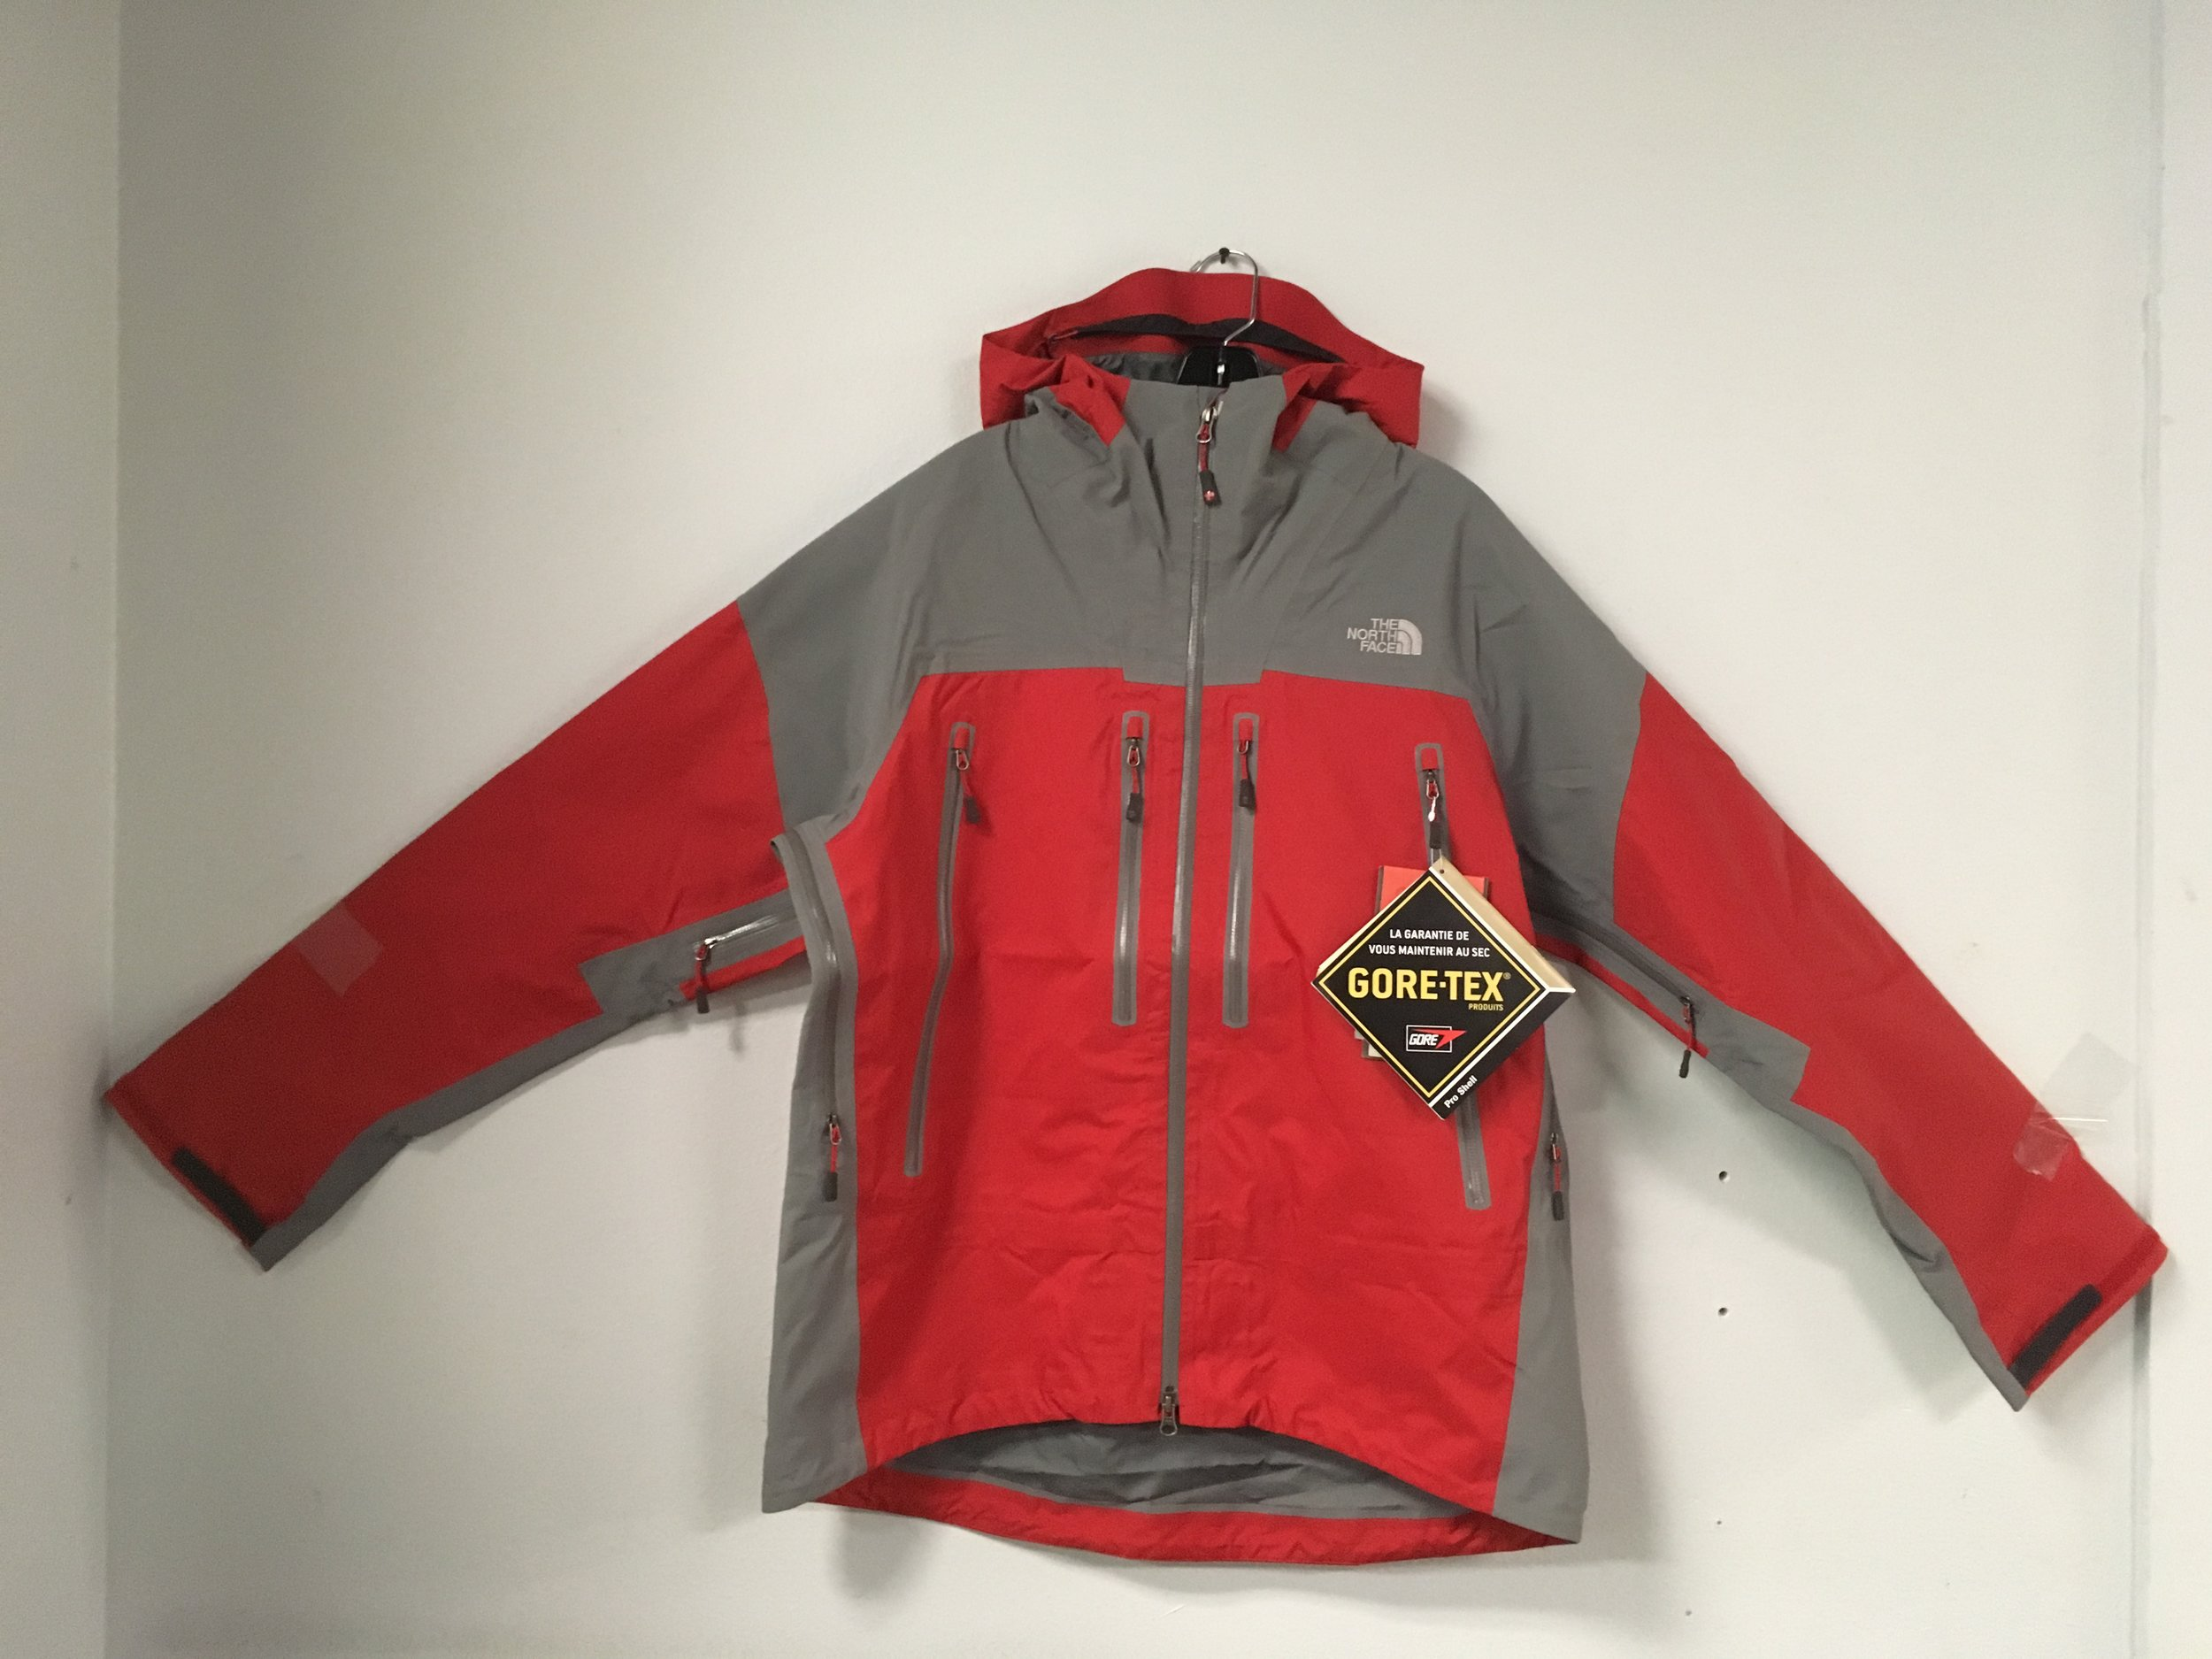 If you got wet riding today you need this jacket! The North Face Mammtus jacket features Gore Tex Pro Shell fabric with large pit zips to keep you vented as well. Retail on the jacket is $450 but we have it priced at $250 and the size is a men's large.